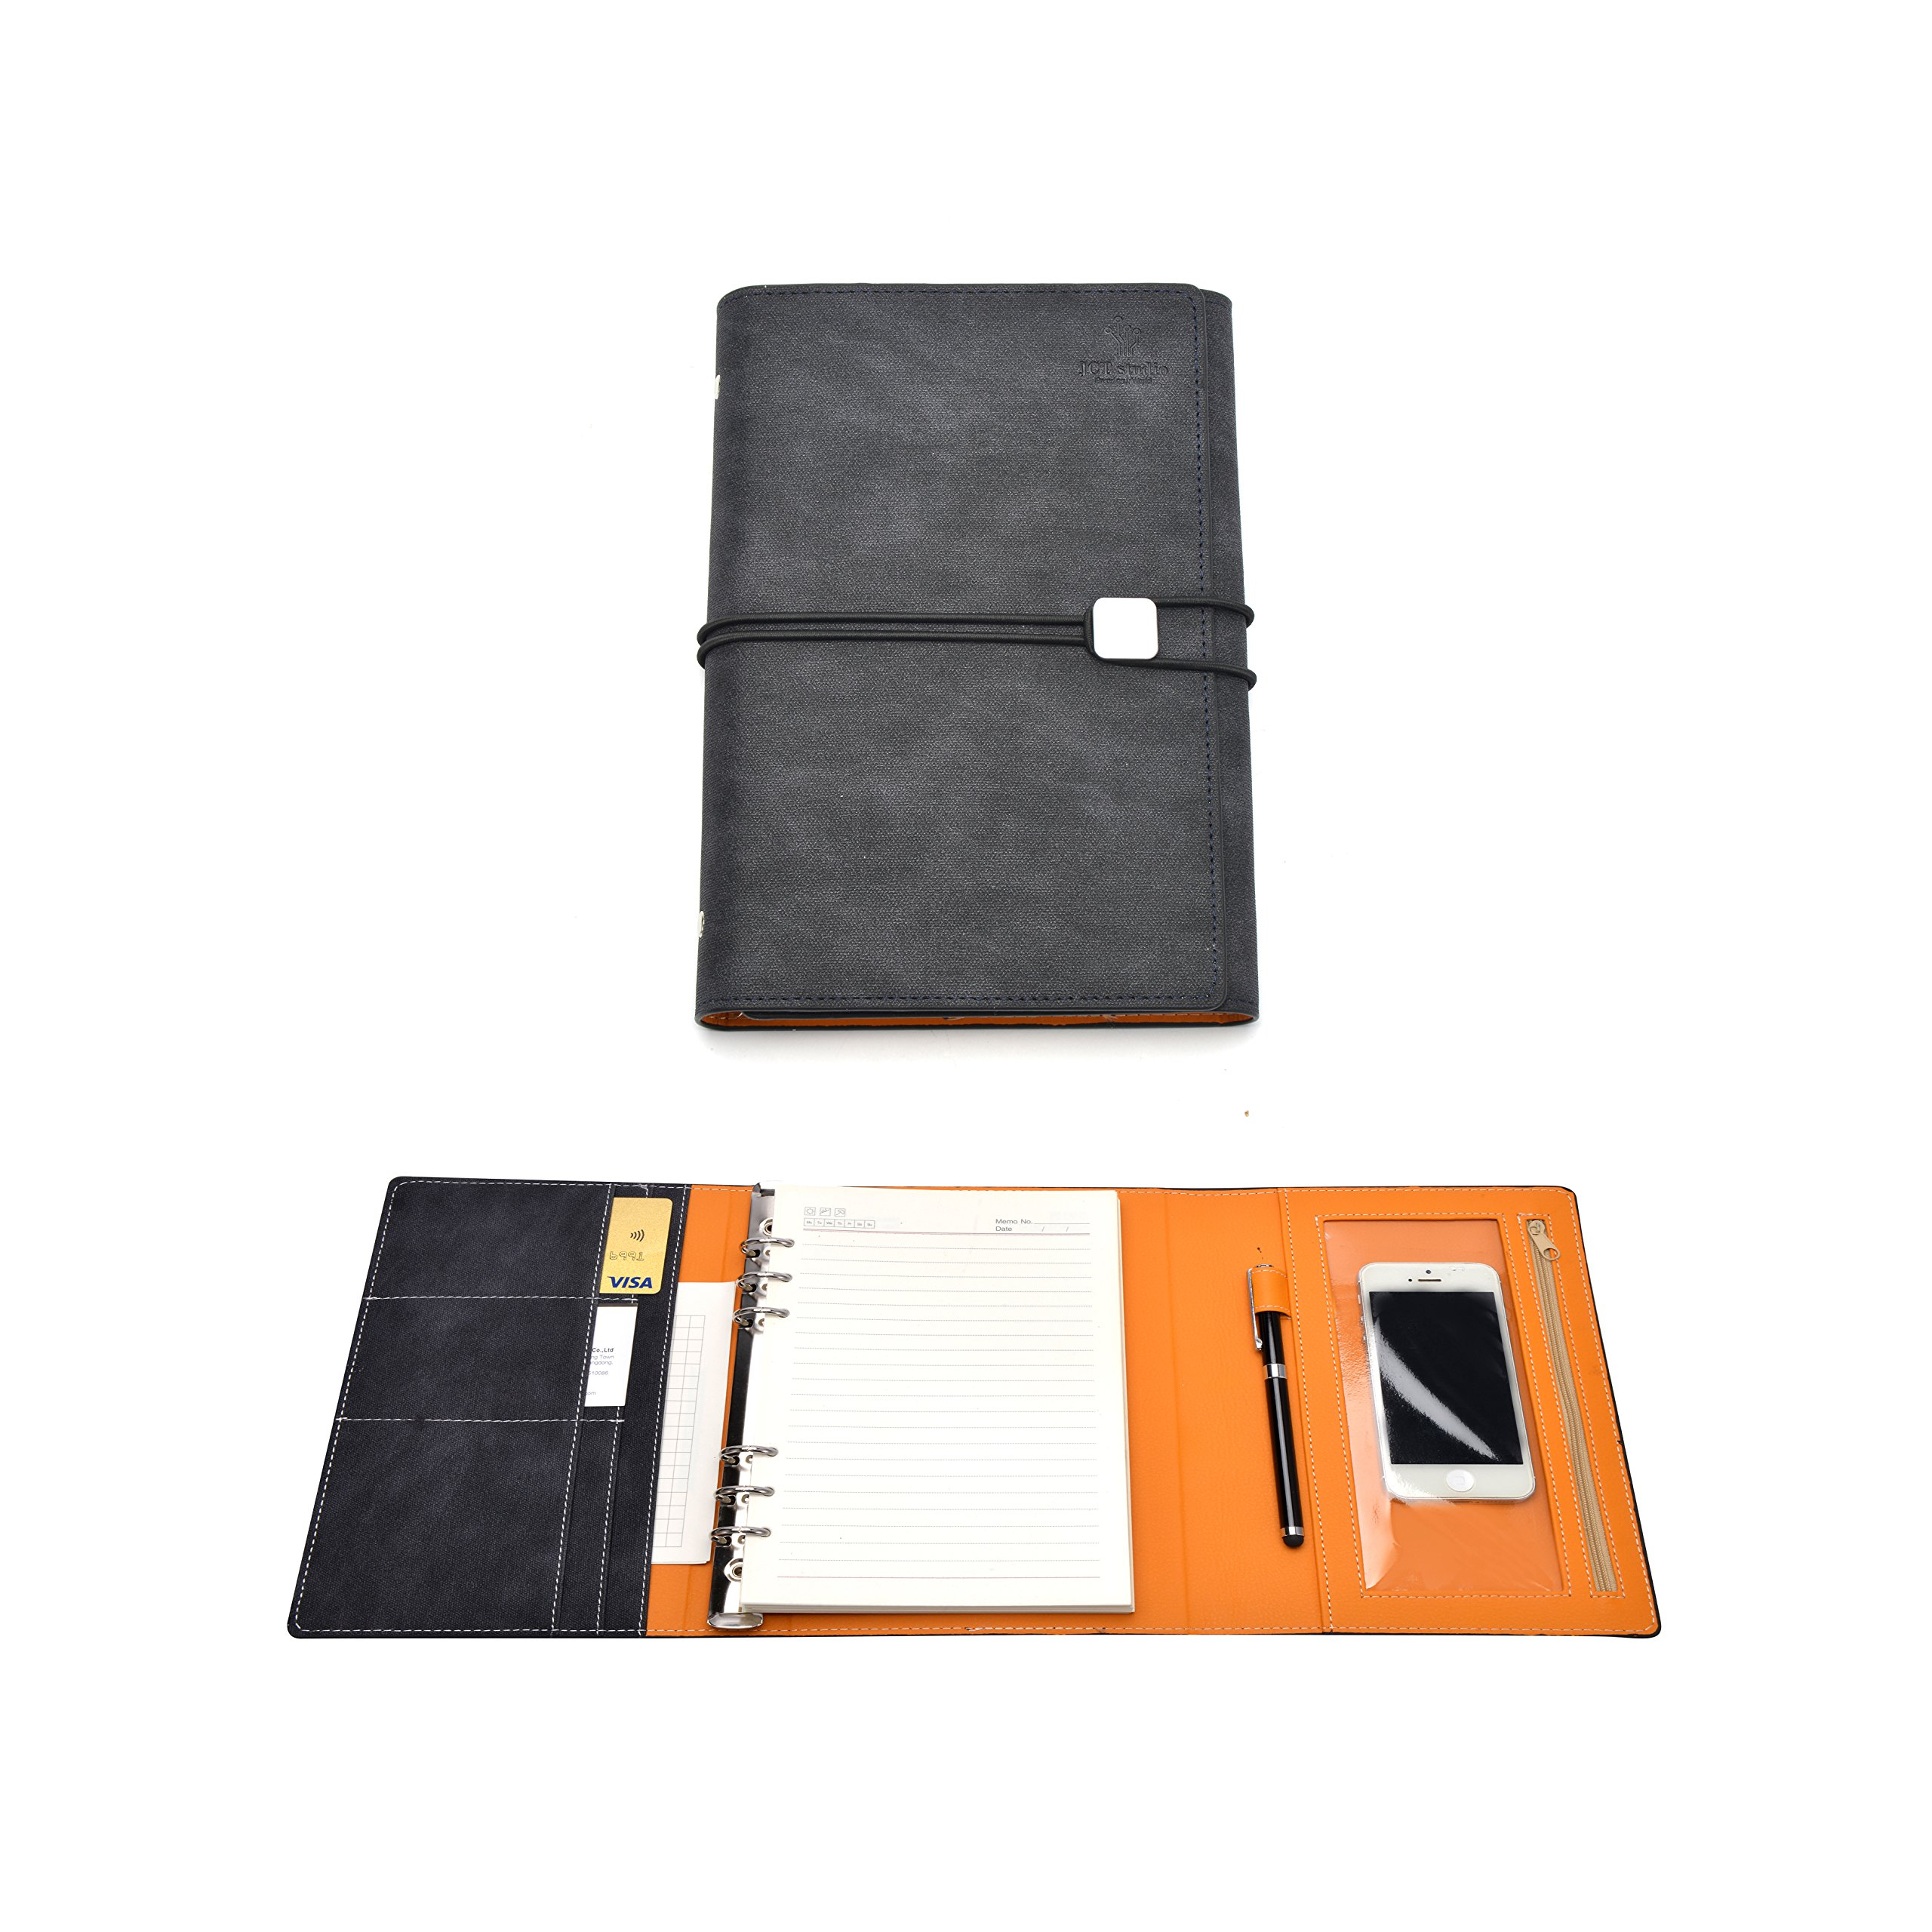 JCT Hardcover Notebook - Portfolio Folder, Pu Leather, Document Organizer, Resumes, Dowling Paper, Business Card Holder, Pen Loop, Phone Slot, Banded, Touch Screen Pen & Random Gifts